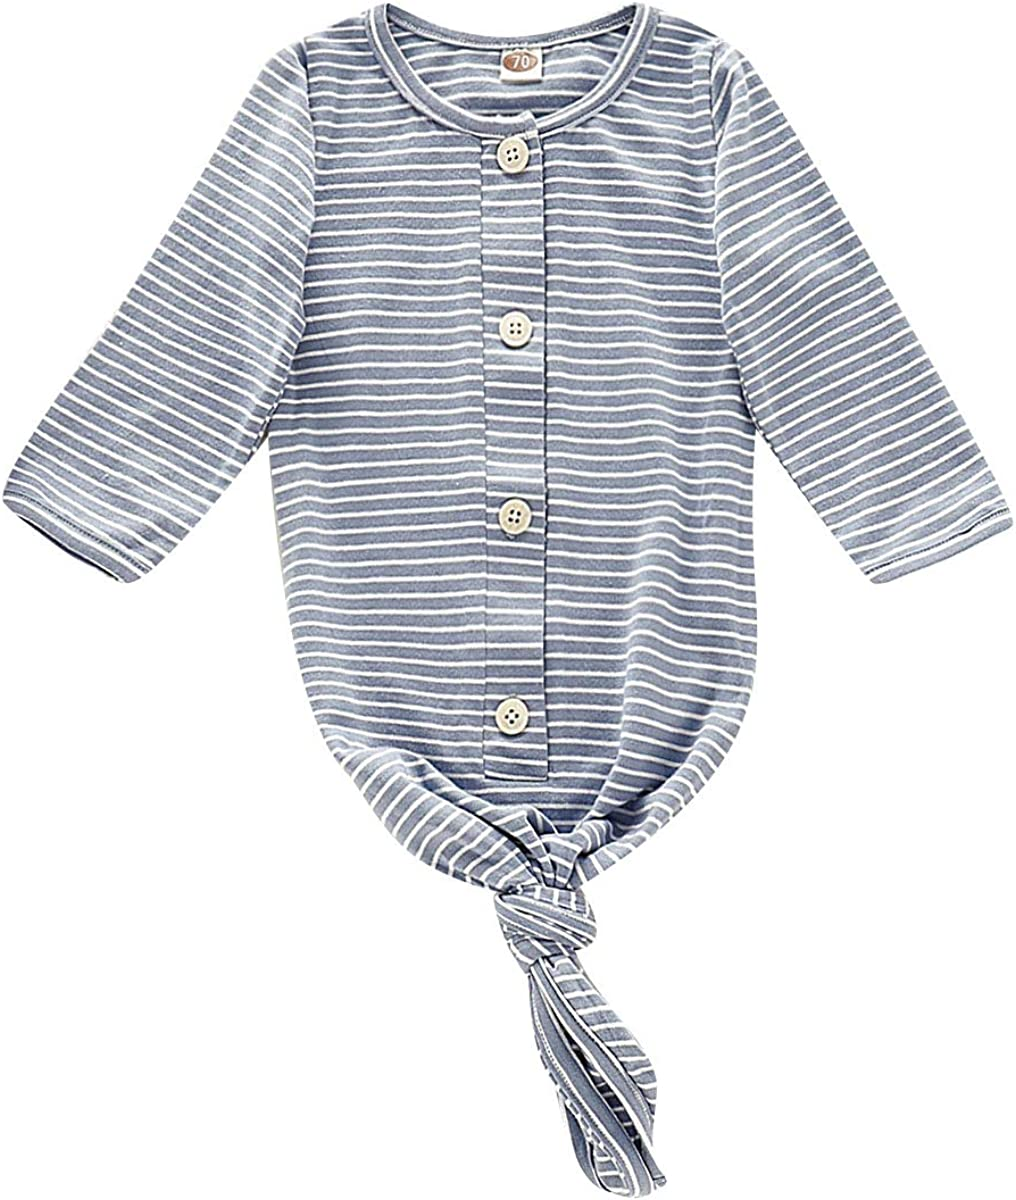 Newborn Baby Boys Girls Knotted Gown Solid Color Nightgown Long Sleeve Stripe Baby Sleeping Bags Infant Coming Home Outfit